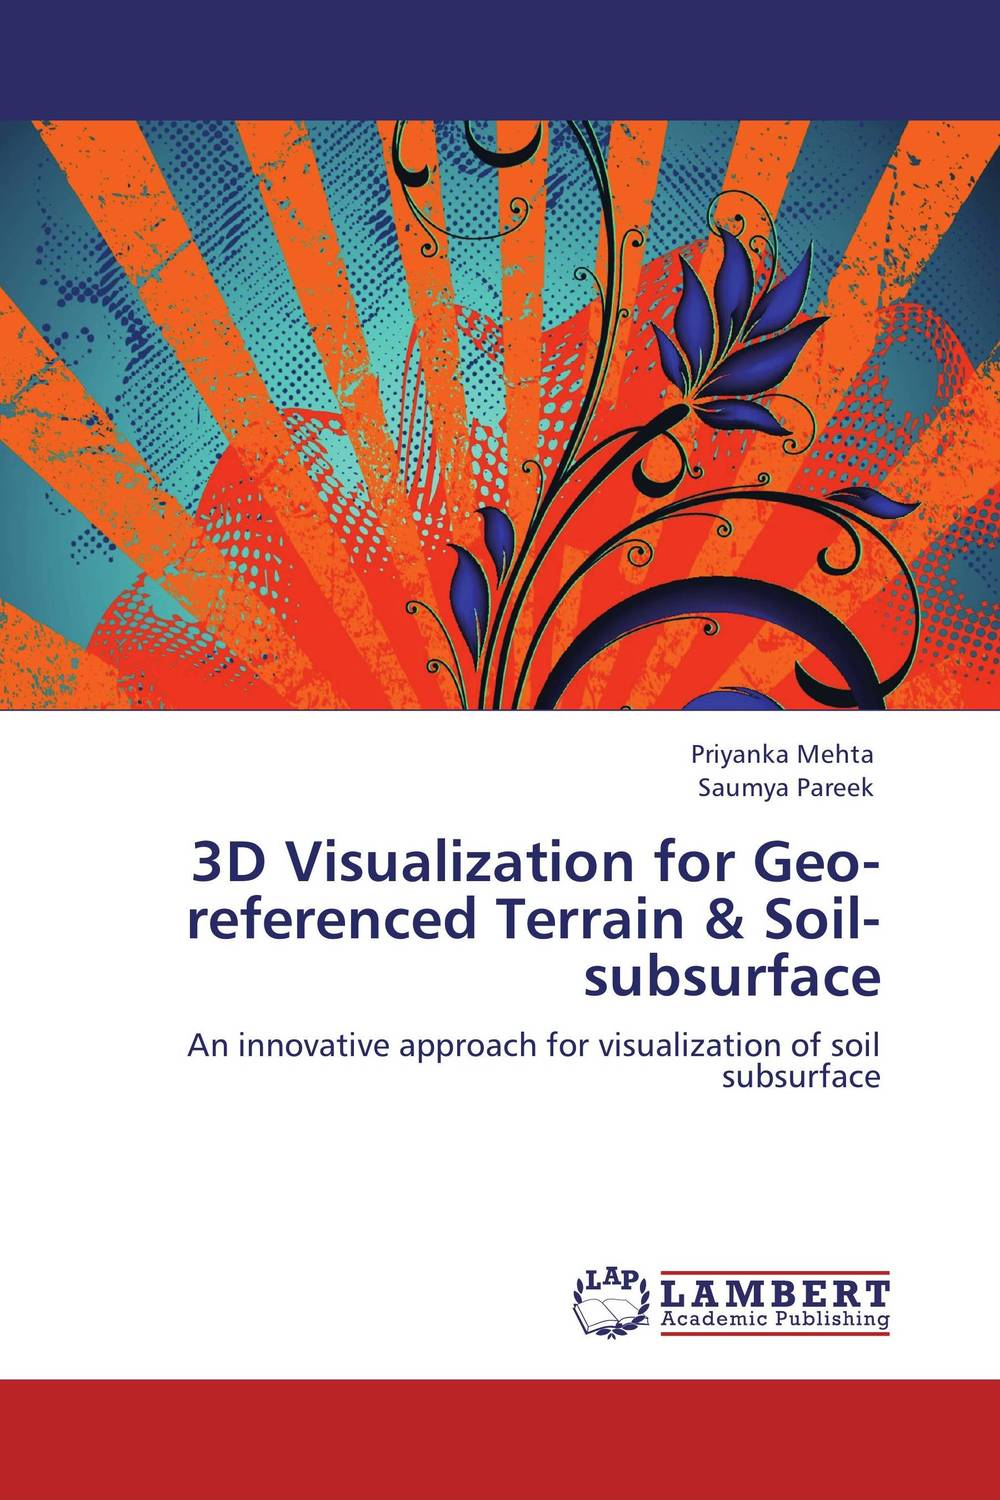 3D Visualization for Geo-referenced Terrain & Soil-subsurface real time gpu based 3d ultrasound reconstruction and visualization